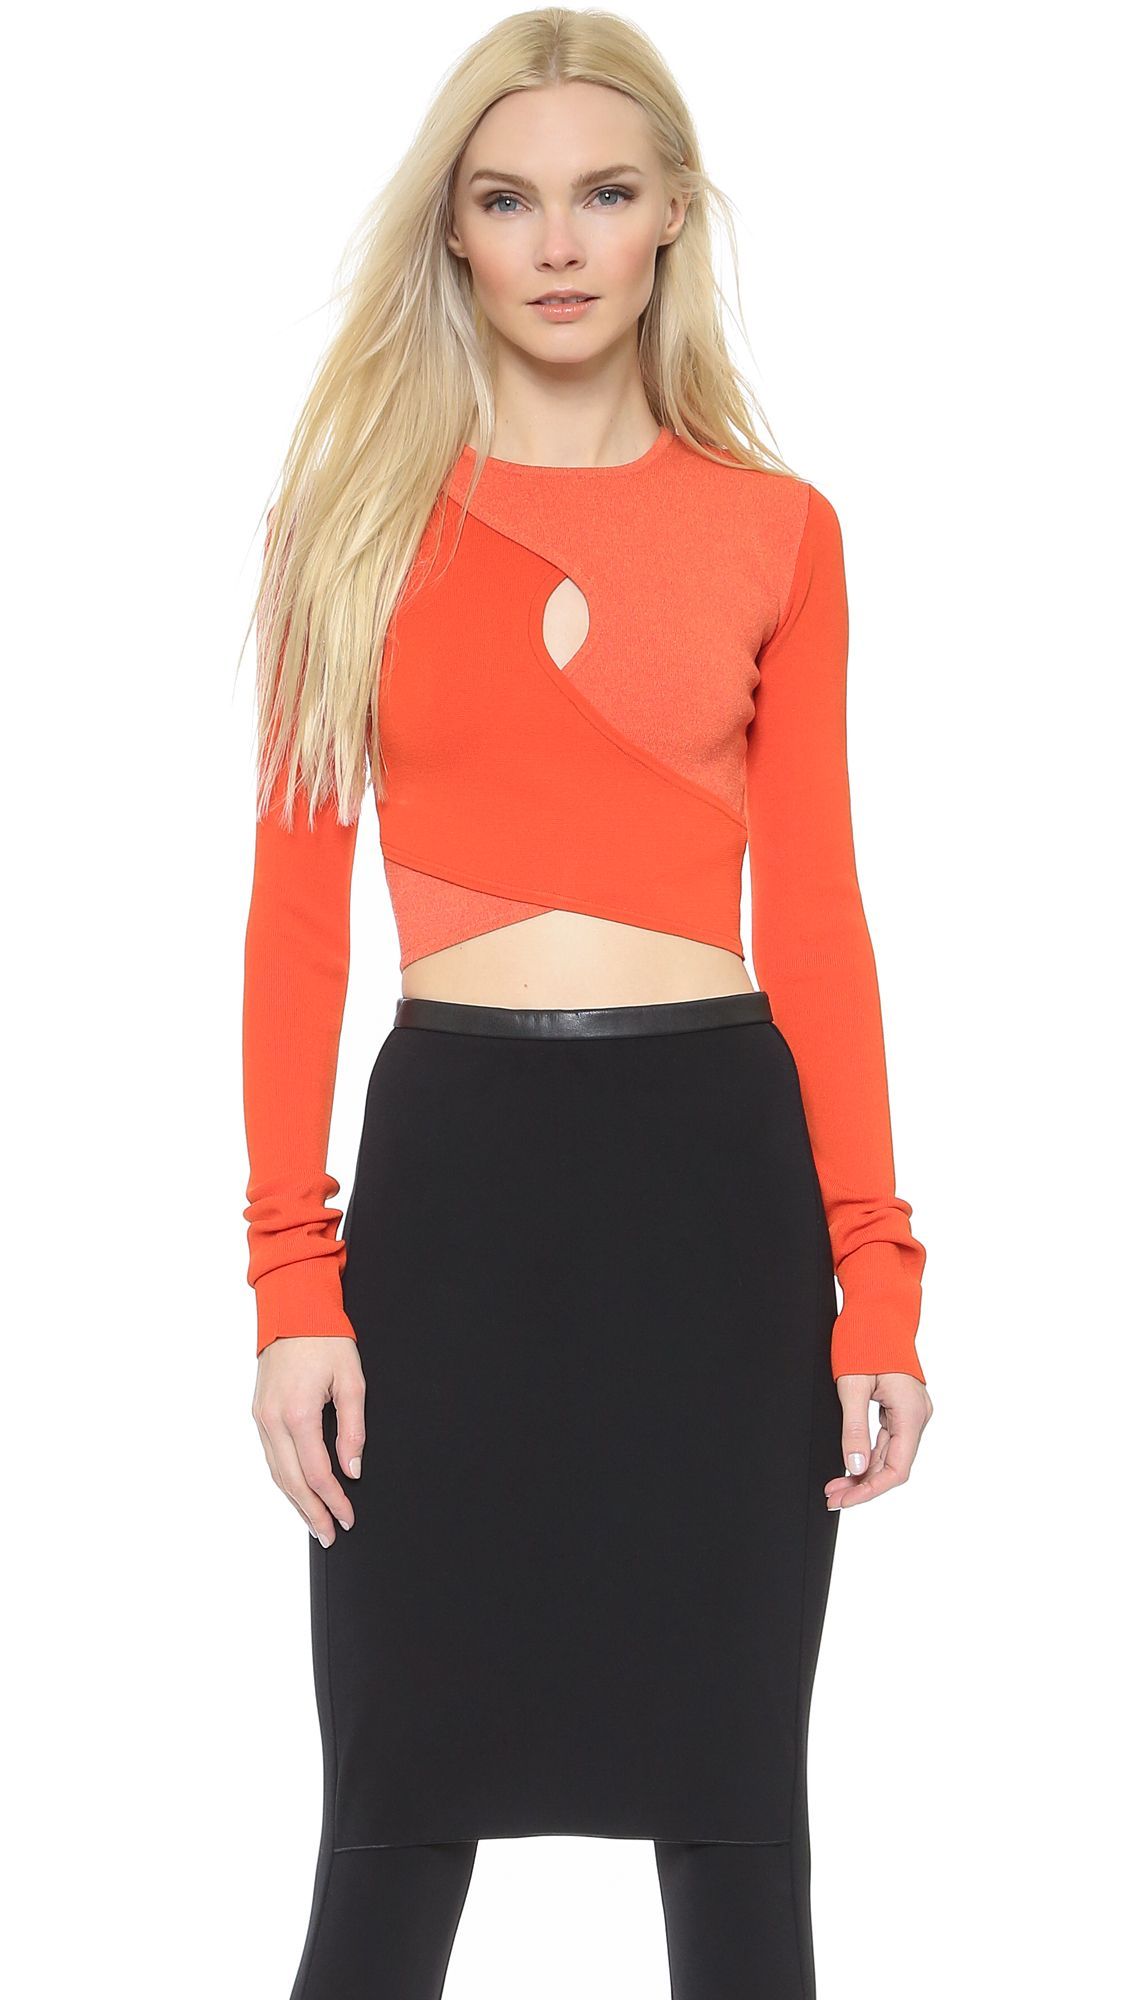 Line II Dion Lee Milano Shadow Block Crop Top